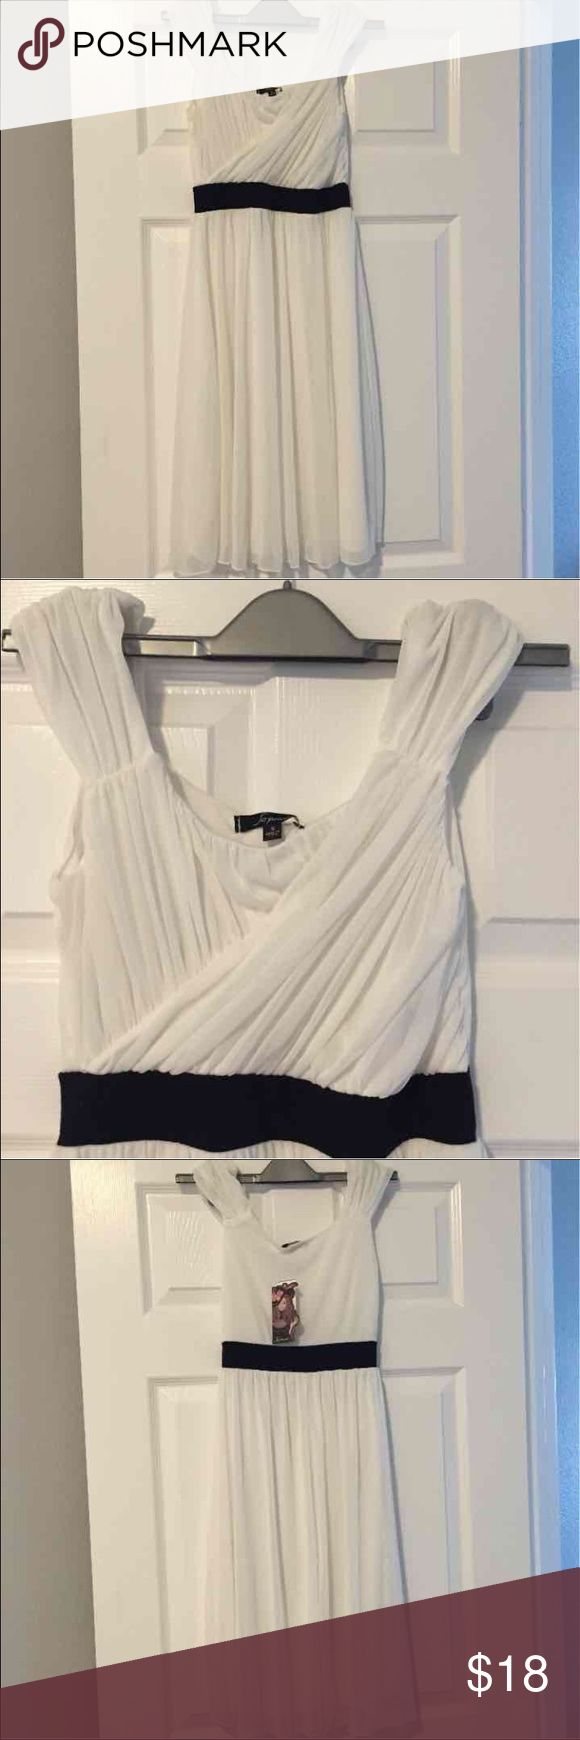 """🎉BOGO🎉 nordstrom dress buy 1 get 1 on only listings titled """"🎉BOGO🎉"""" for a special fall sale 🍁🍂 bundle your items together and i can either make you the offer or you can make me the offer, lowest price for free, no limit! BP, brand new with tags! Nordstrom Dresses"""